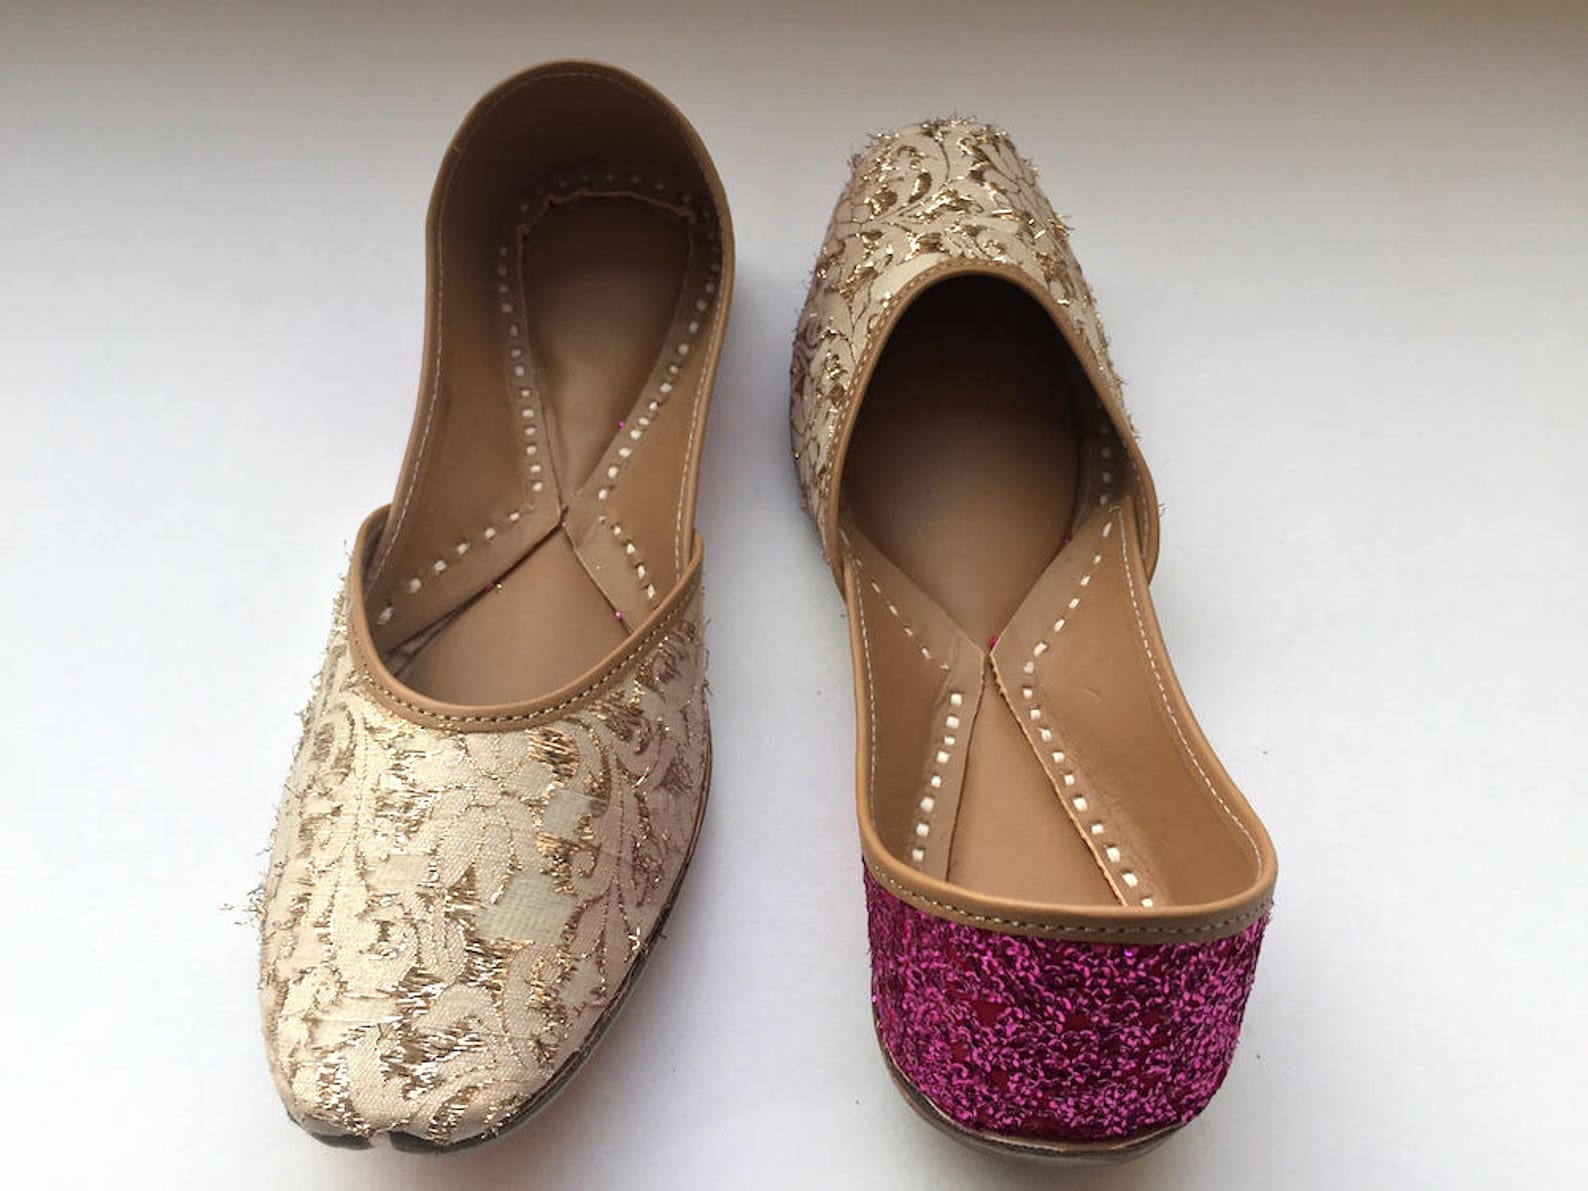 off white and pink shoes with gold and shimmer hints/women shoes/bridal ballet flats/sequins flats/wedding shoes